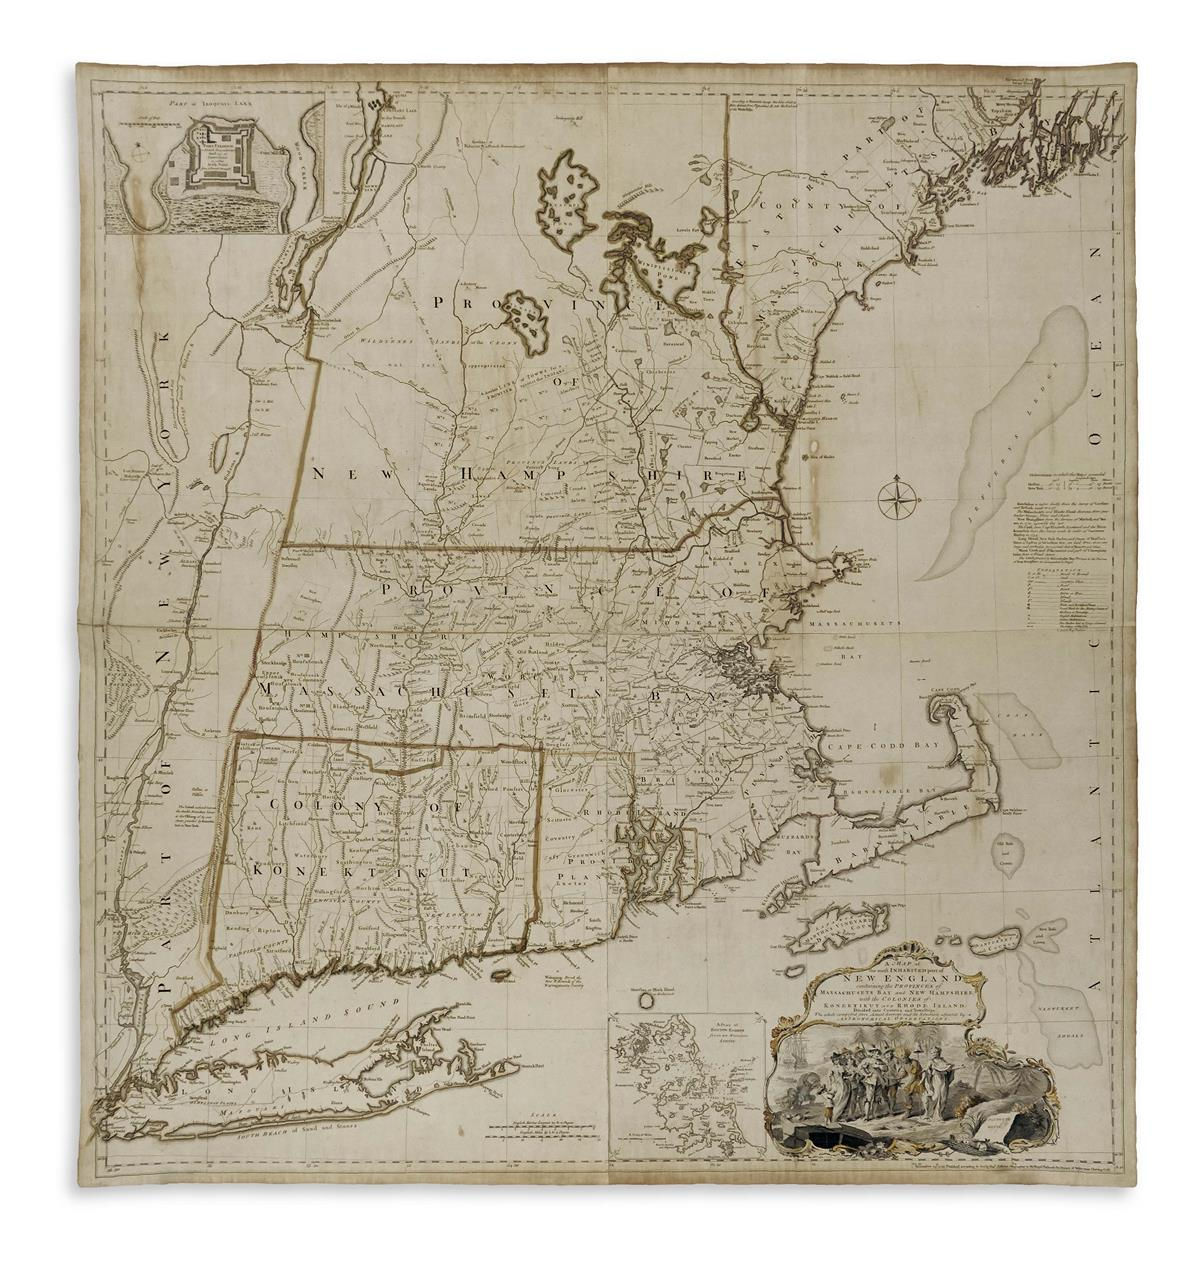 MEAD, BRADDOCK, alias GREEN, JOHN. A Map of the Most Inhabited Part of New England